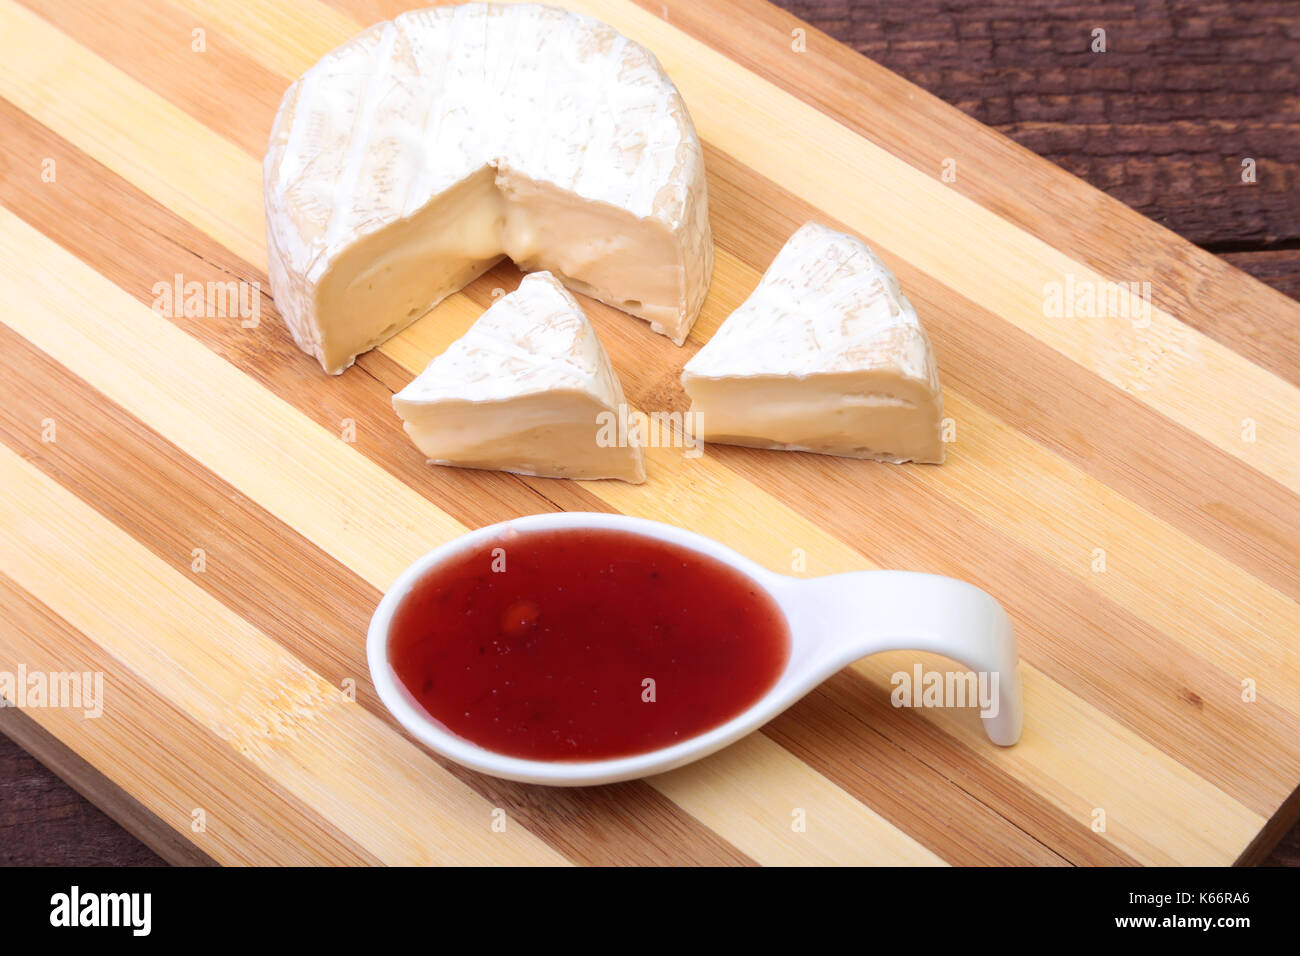 Cheese with white mold. Camembert or brie type with Cranberry sauce.. Healthy breakfast. - Stock Image